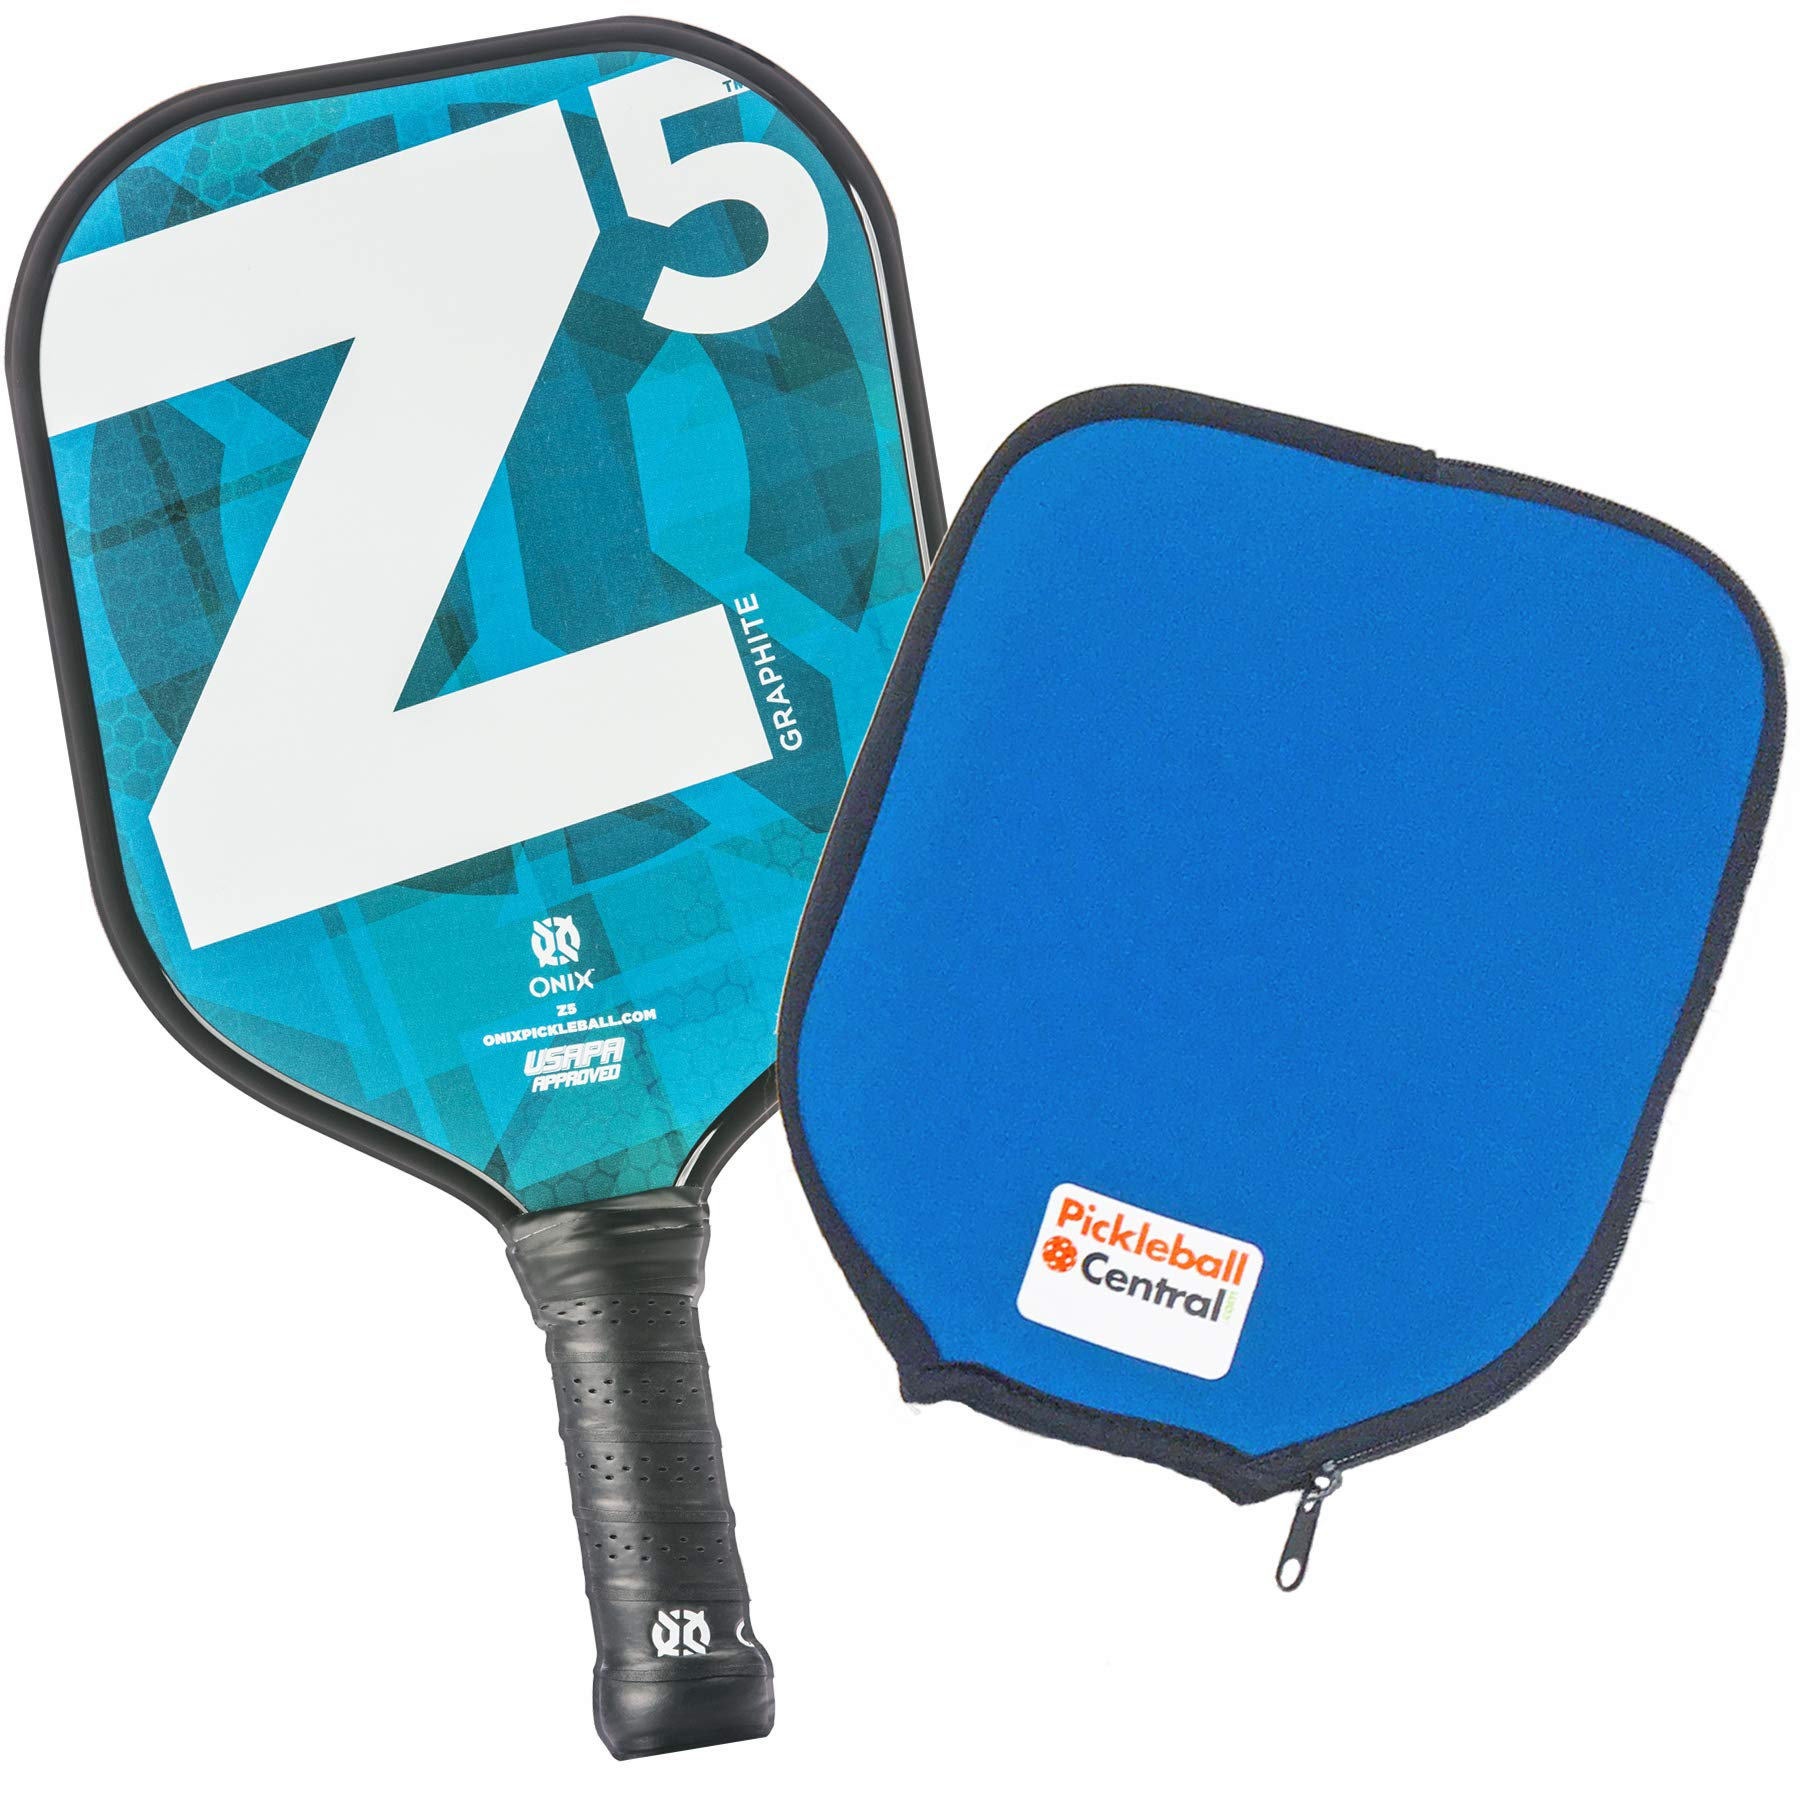 Onix Z5 Graphite Pickleball Paddle and Paddle Cover (Mod Blue) | Gift Pack